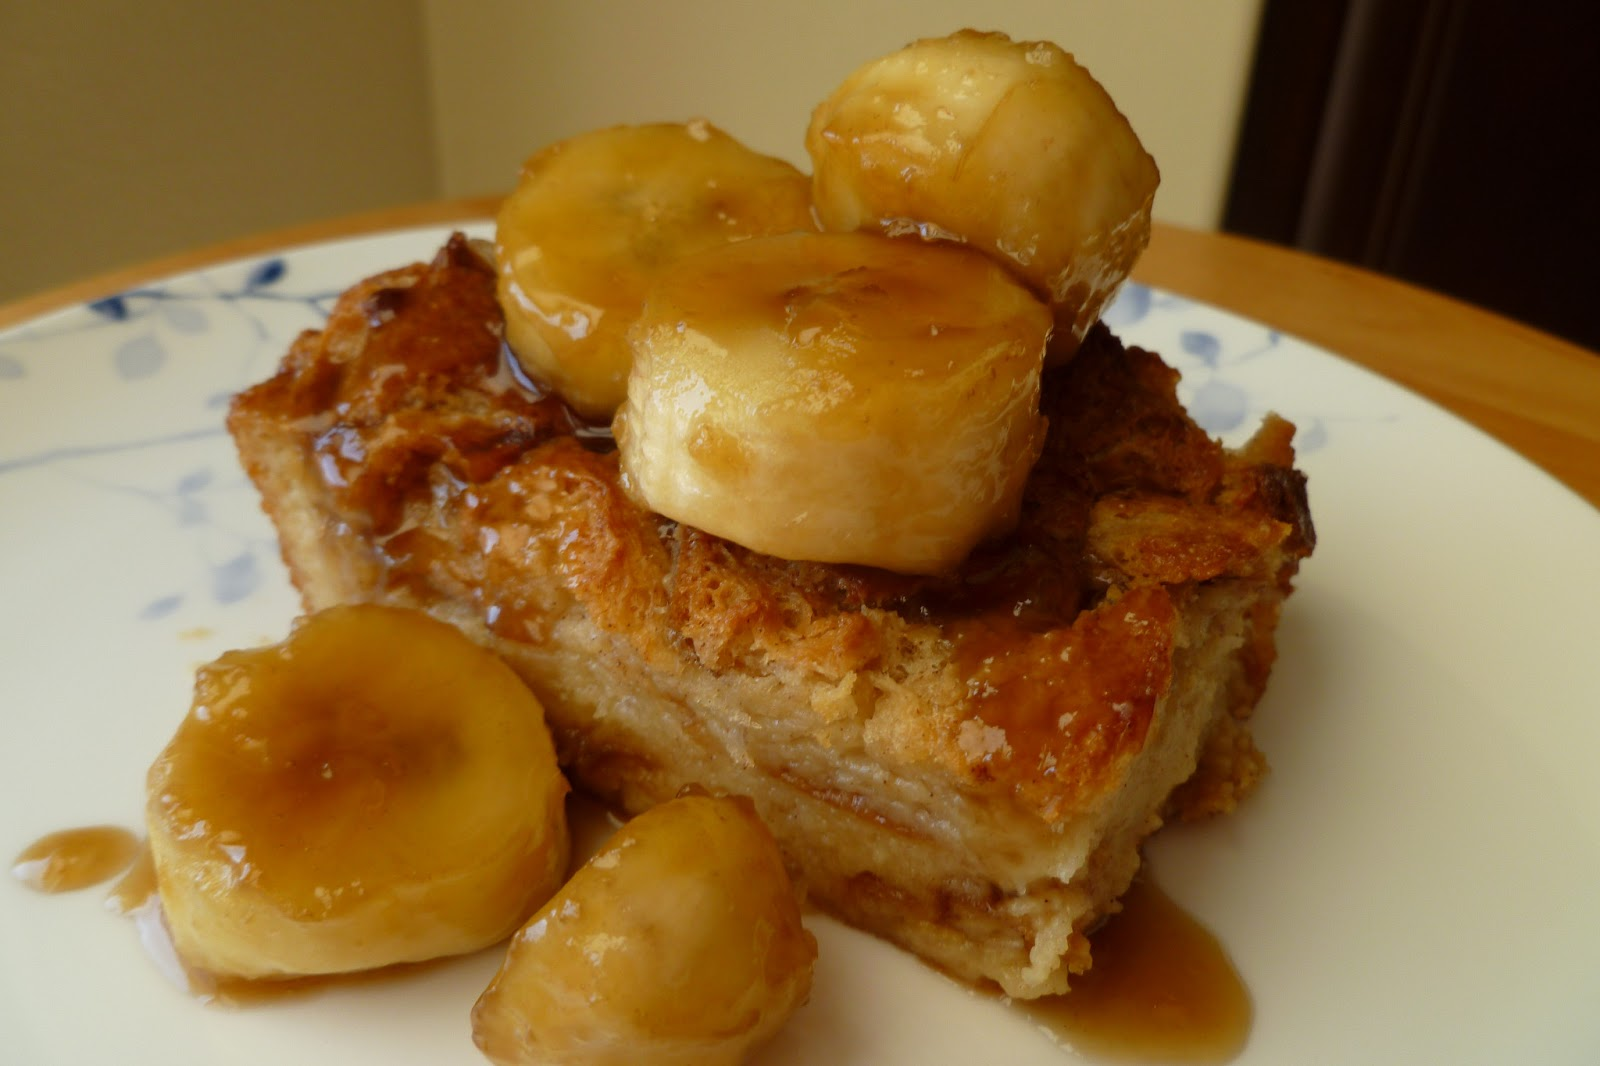 The Pastry Chef's Baking: Banana Caramel Bread Pudding